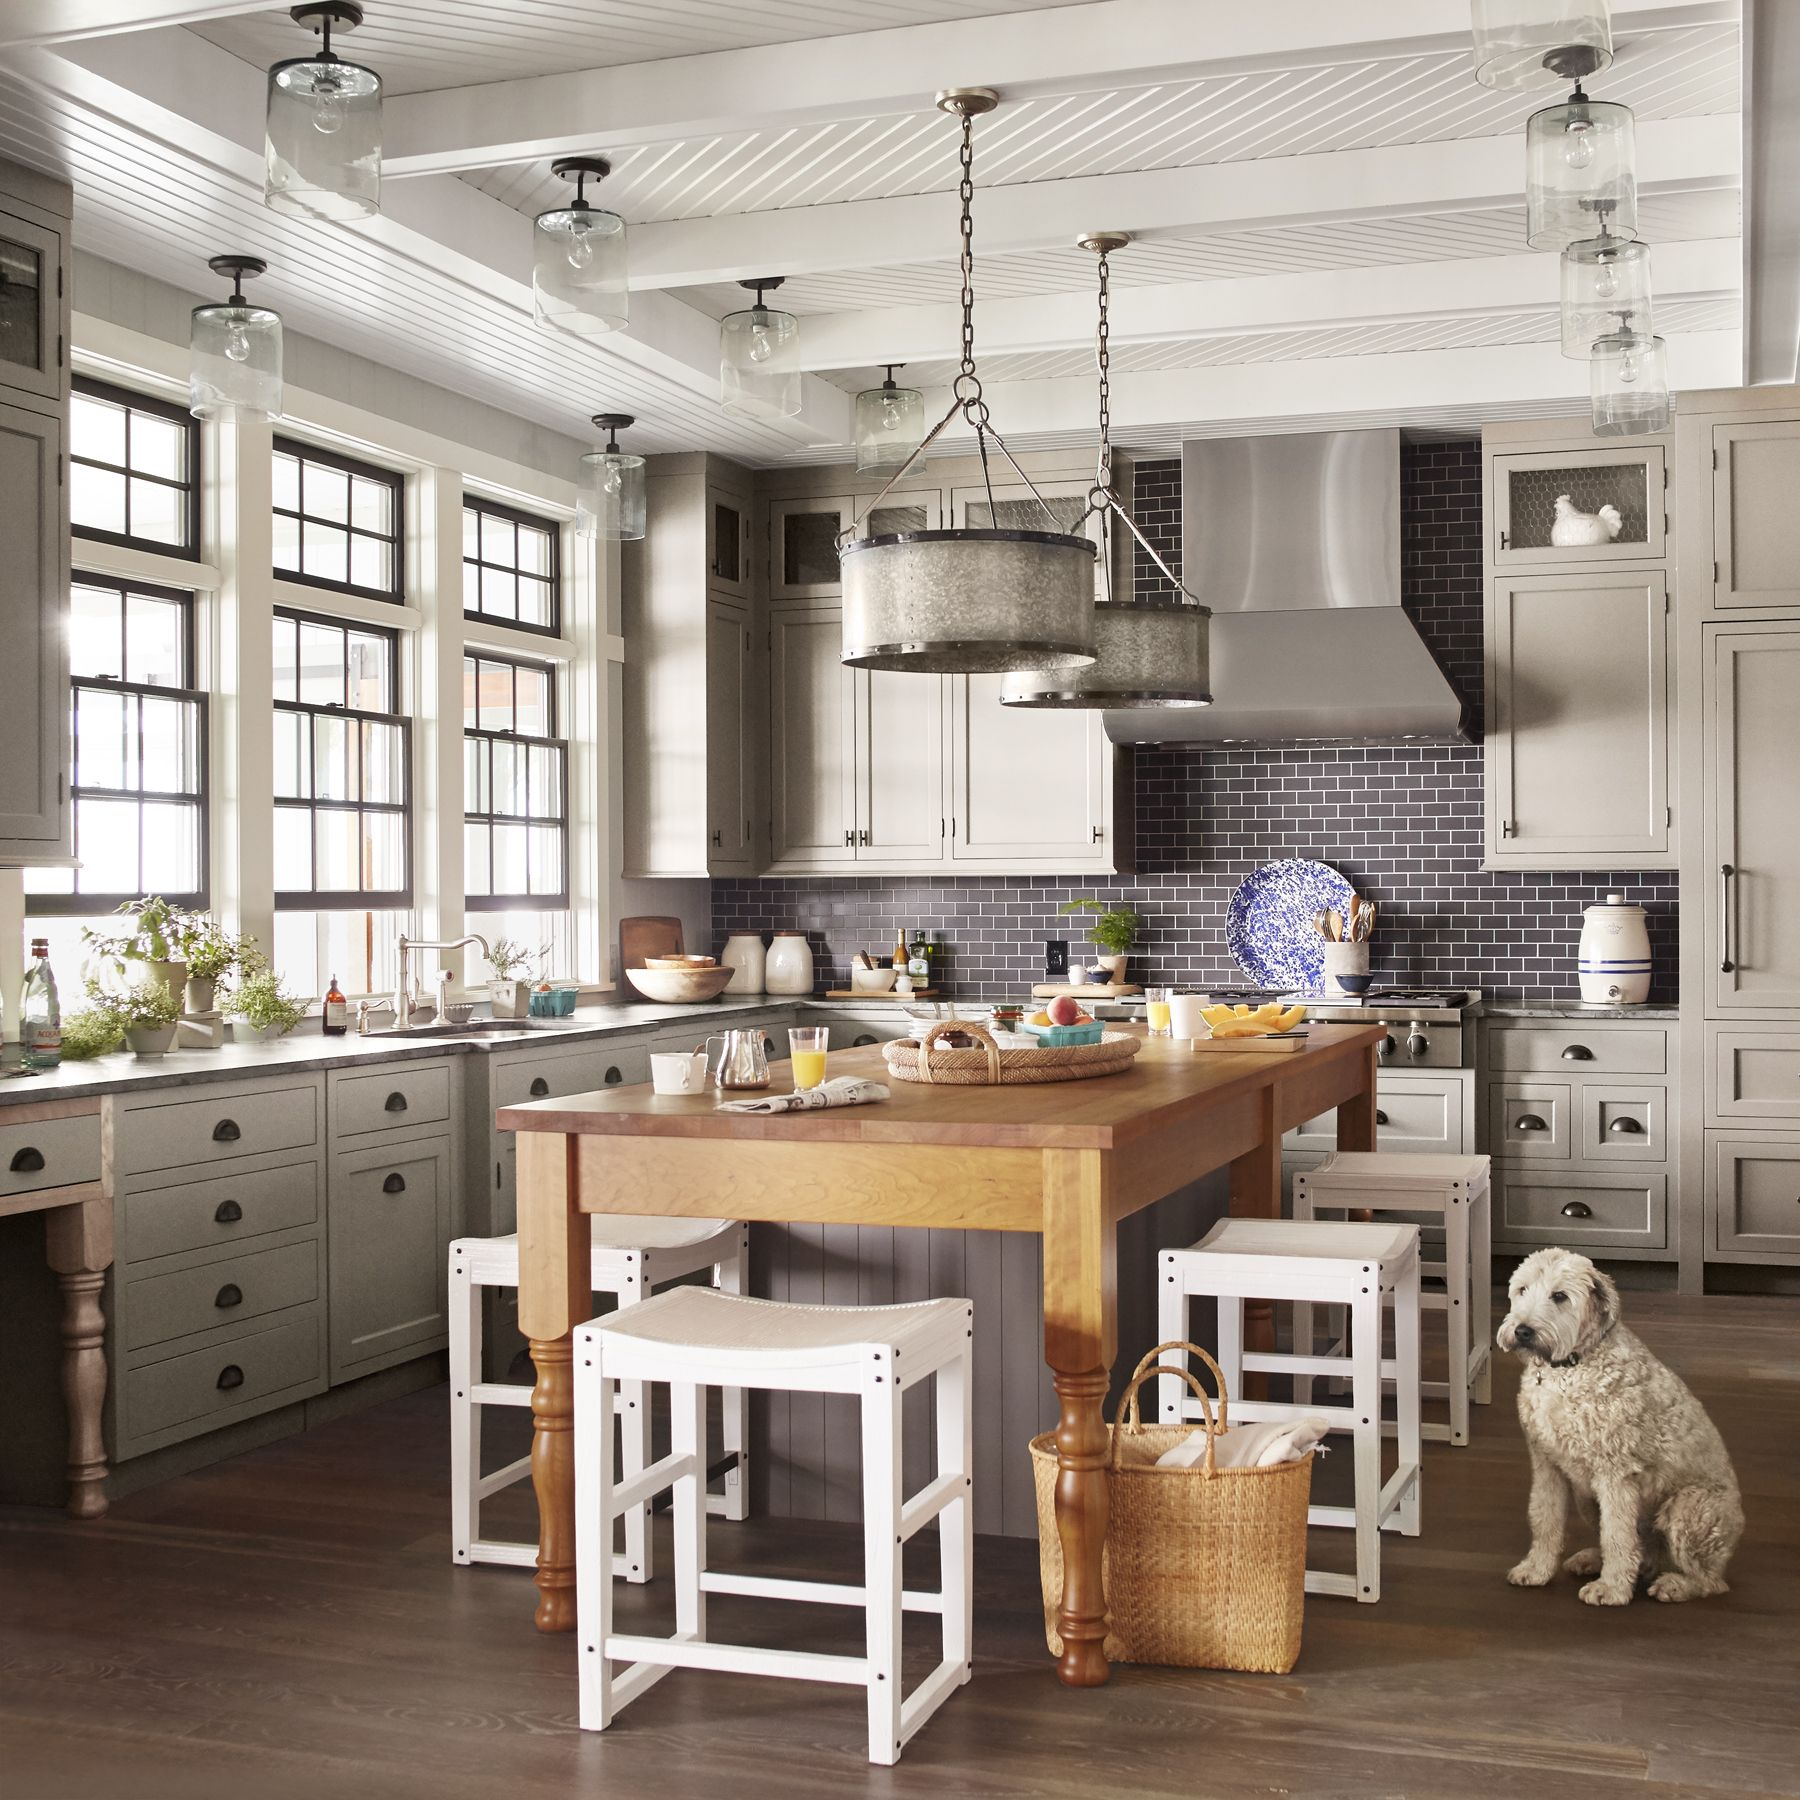 10 Essential Rules For Decorating A Lake House Lake House Kitchen Lakehouse Decor Home Kitchens